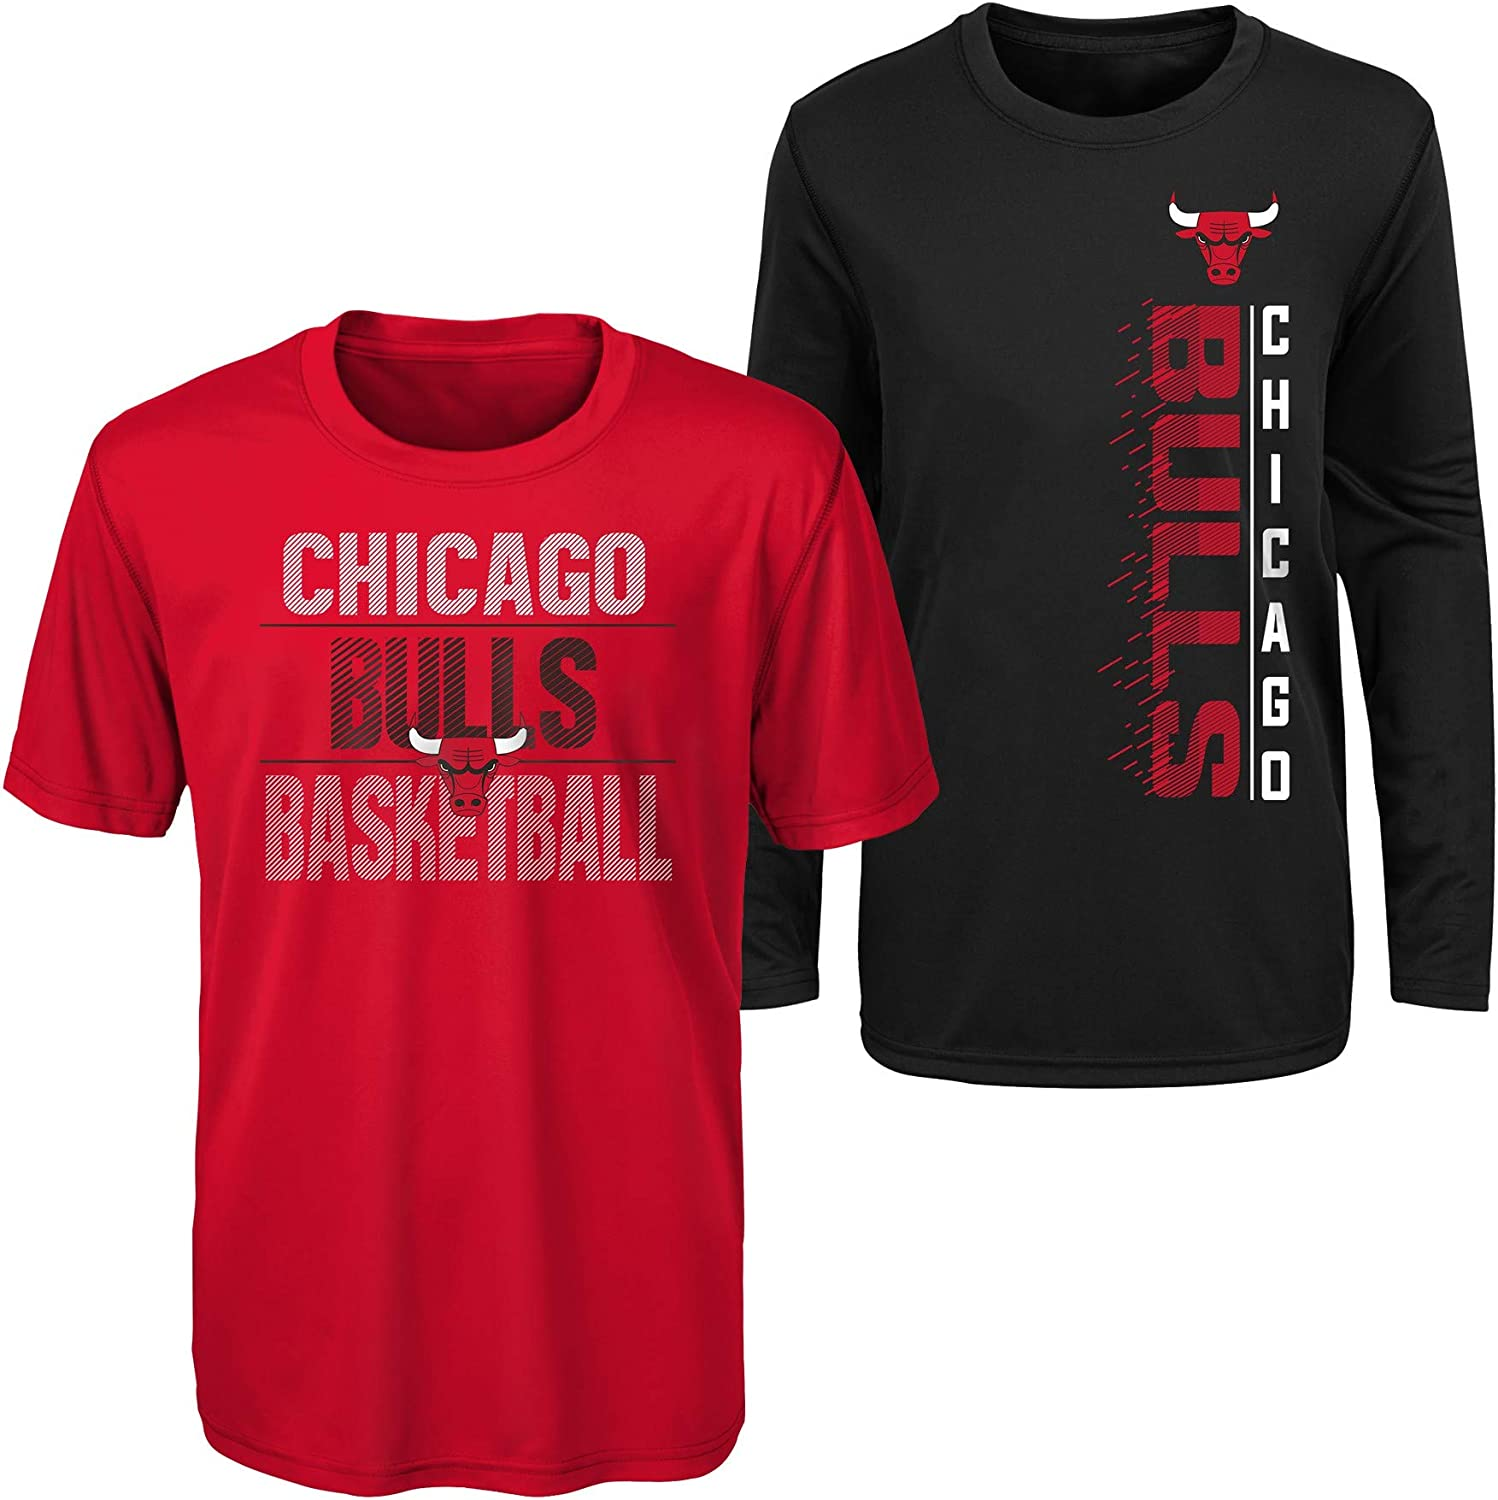 Outerstuff NBA Youth Boys (8-20) Performance Long and Short Sleeve T-Shirt Combo, Team Variation